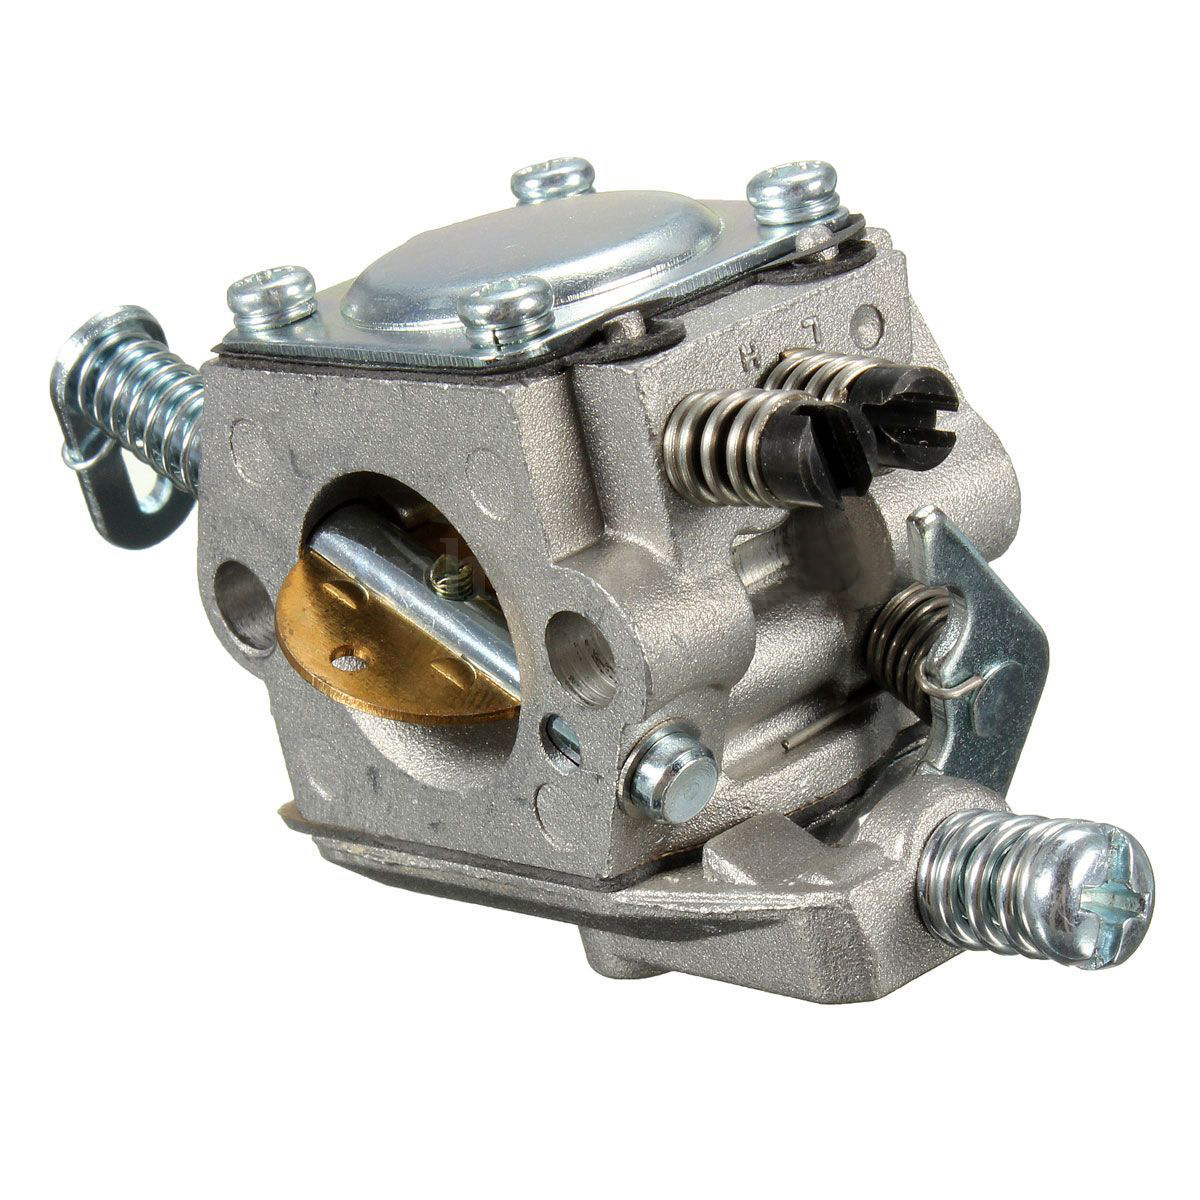 Buy Zama Carburetor And Get Free Shipping On Ryobi Trimmer Parts Diagram As Well Fuel Line Primer Bulb